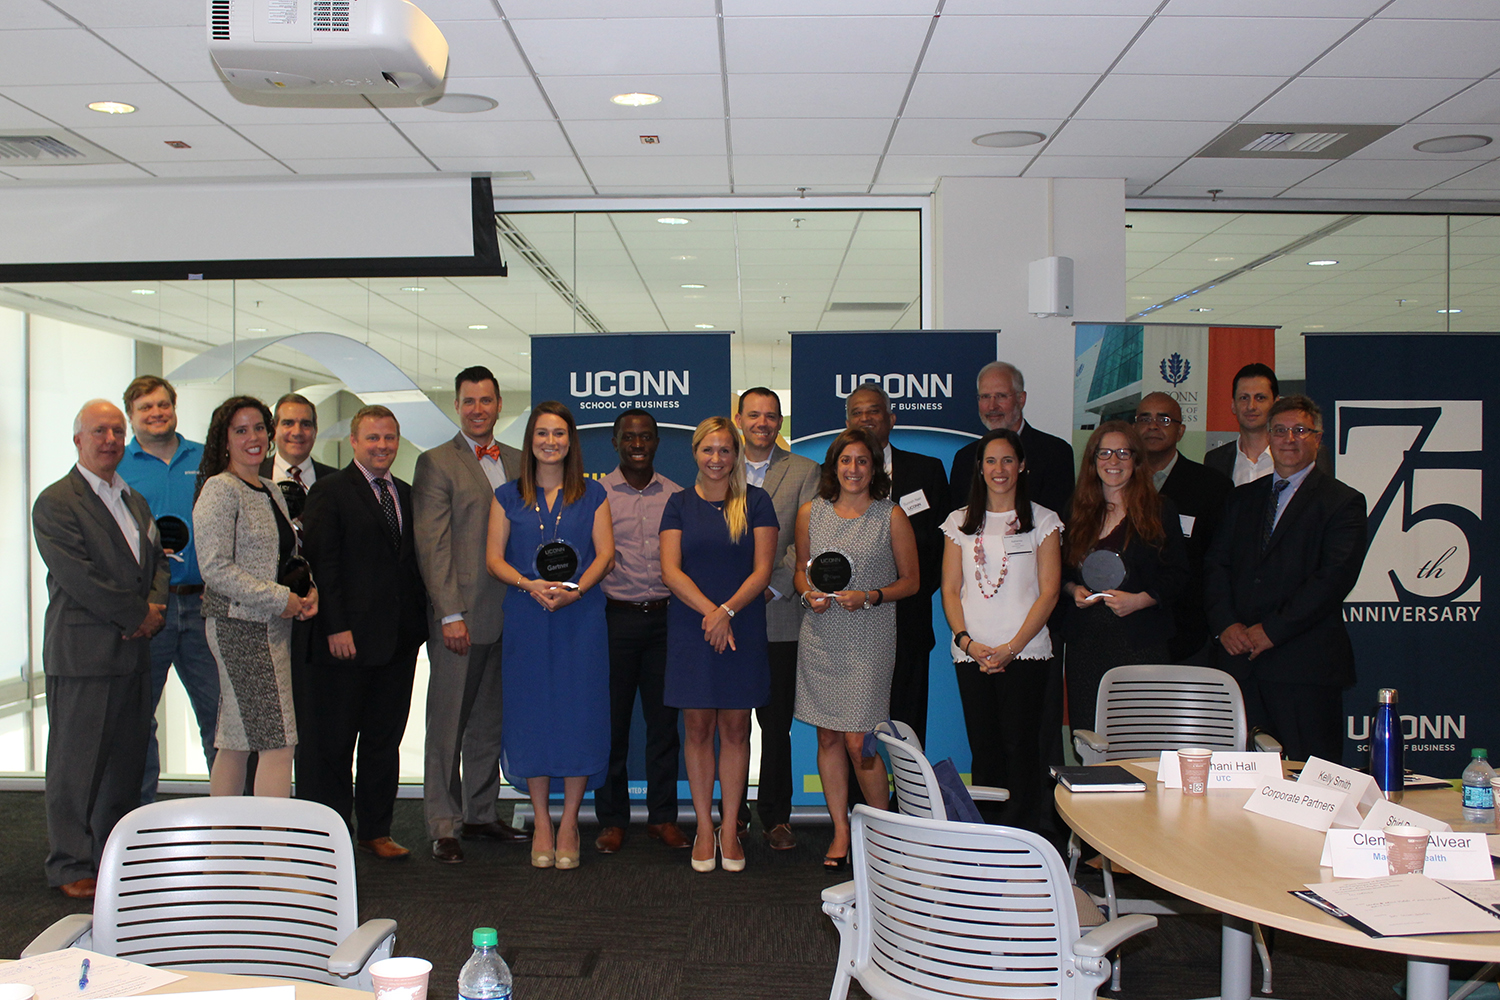 Distinguished corporate partners including Cigna, Cognizant, Gartner, IBM, Priceline and Prudential, at last week's Recruiter Summit. (Theodoros Menounos/UConn School of Business)